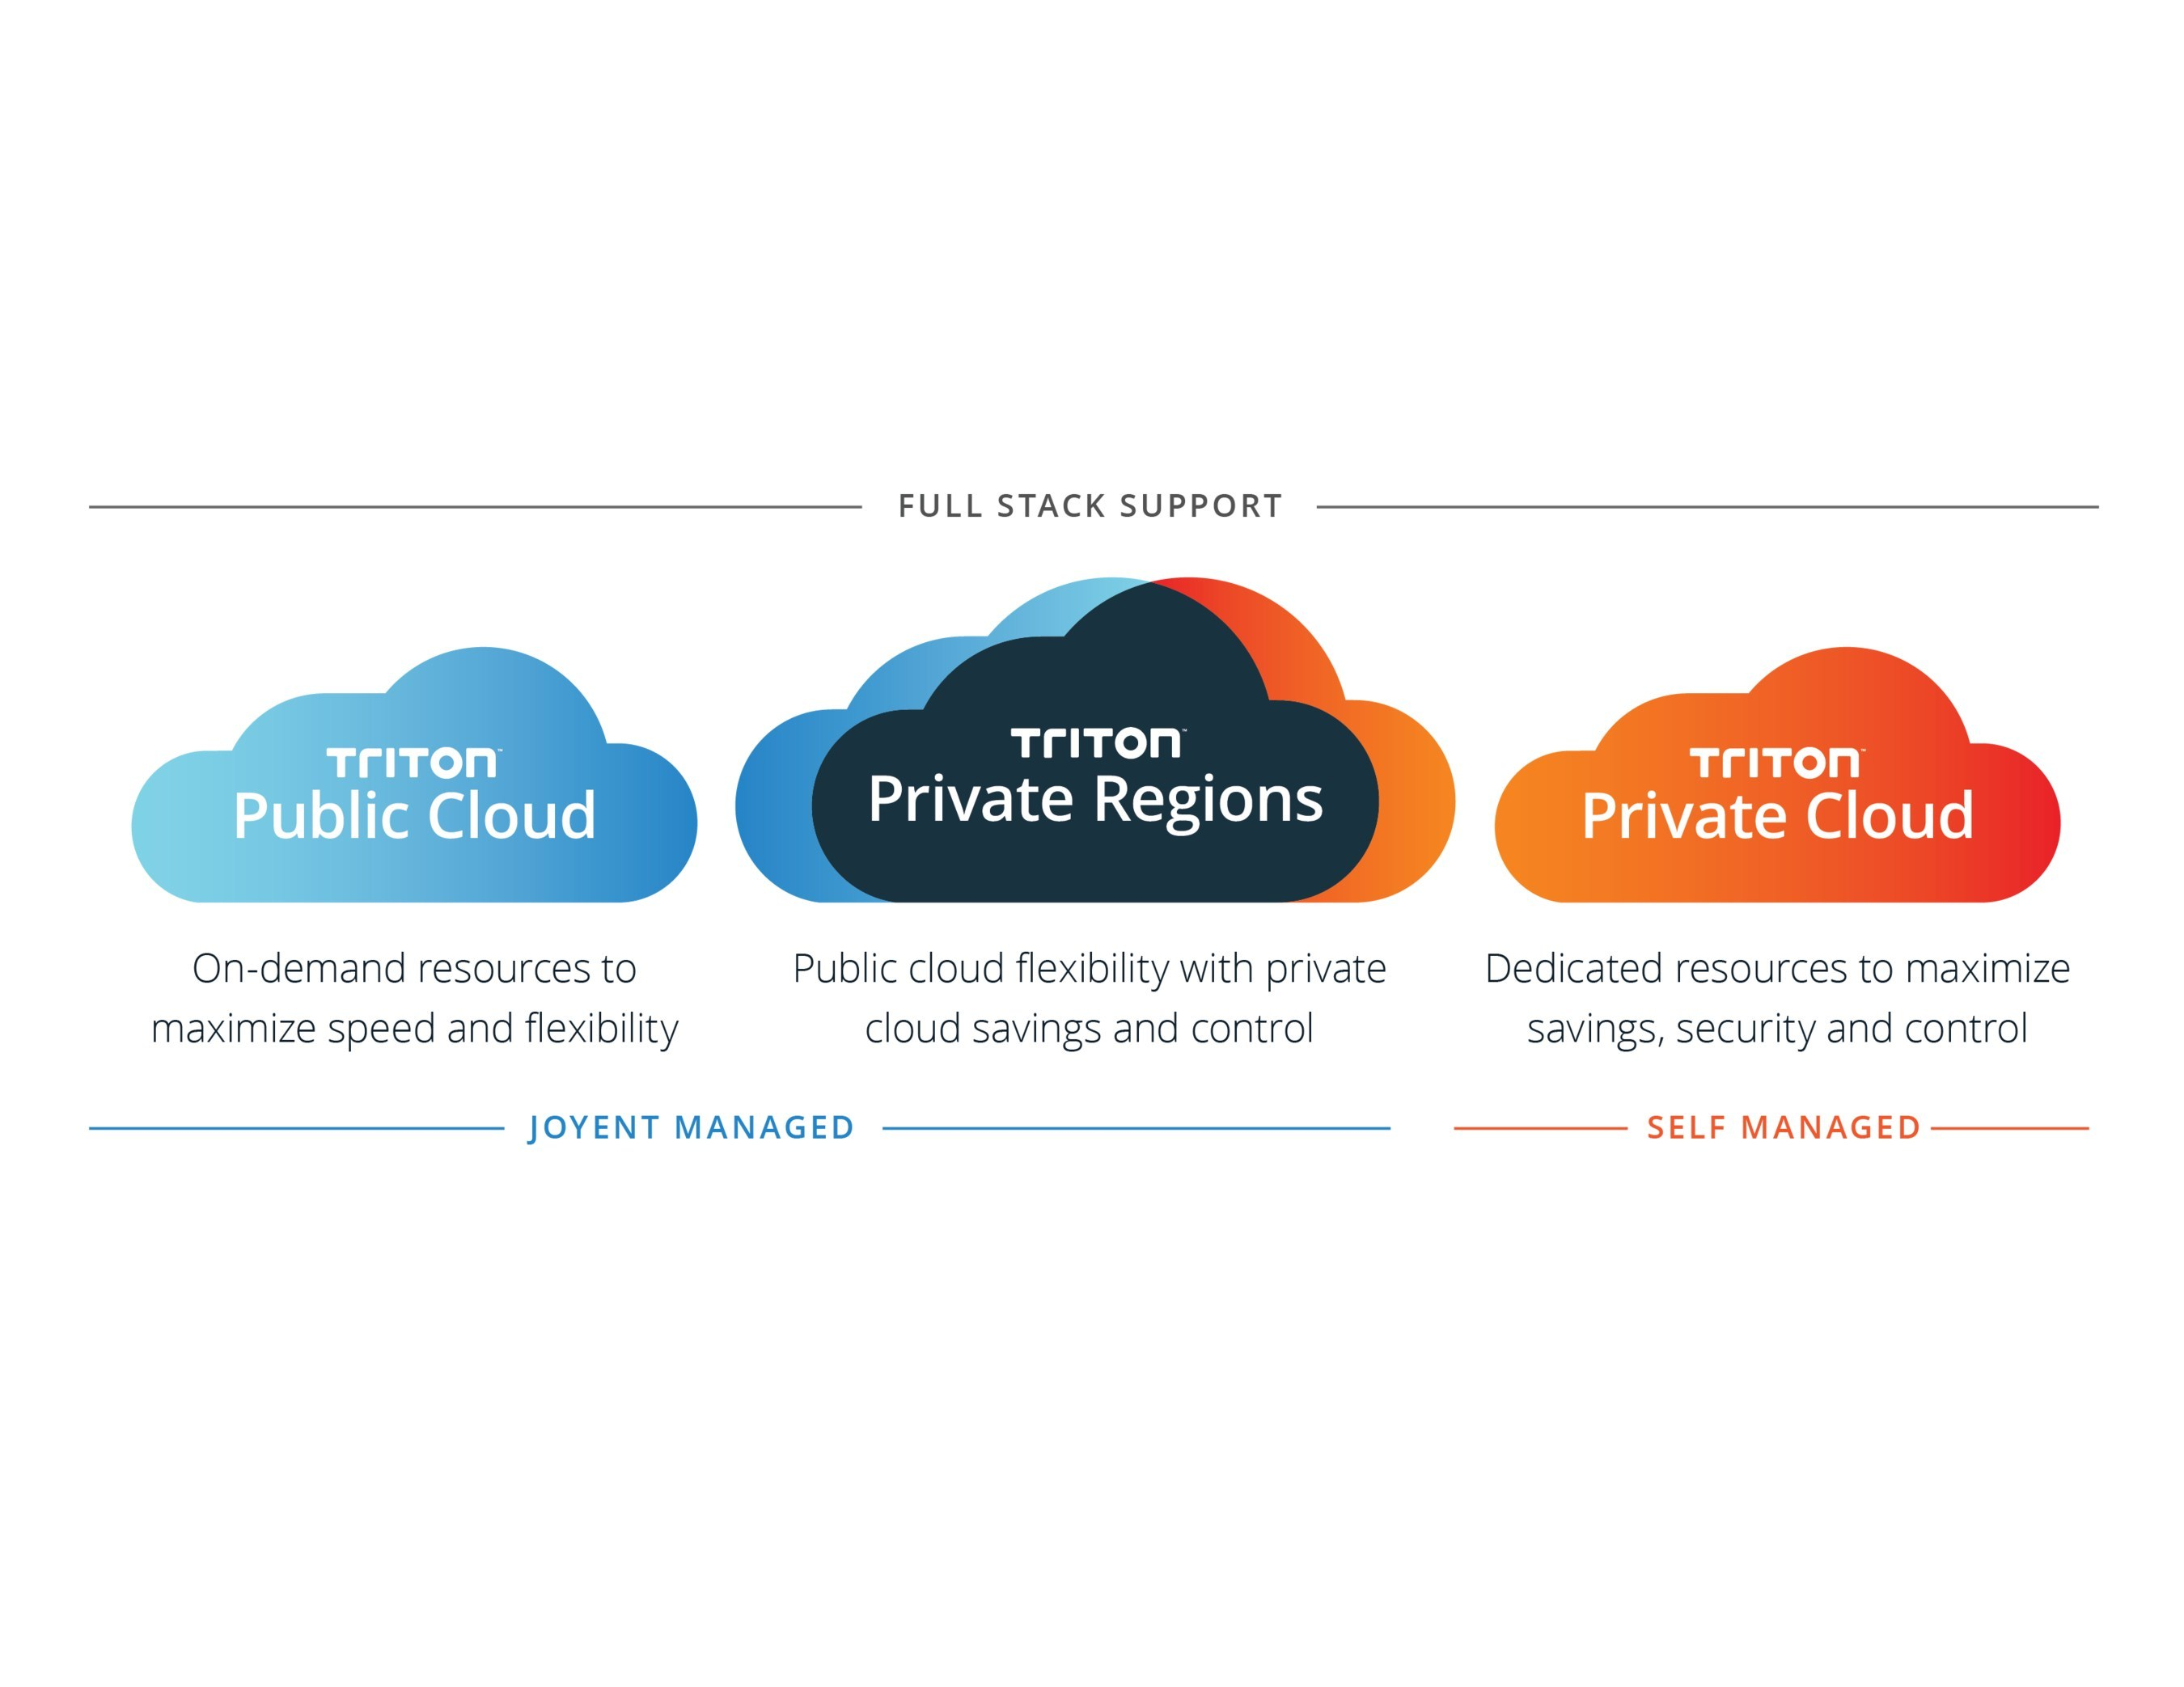 Announcing Triton Private Regions, Joyent's next generation approach to cloud infrastructure as a service that combines the best of public and private clouds to deliver increased control and dramatic cost savings.